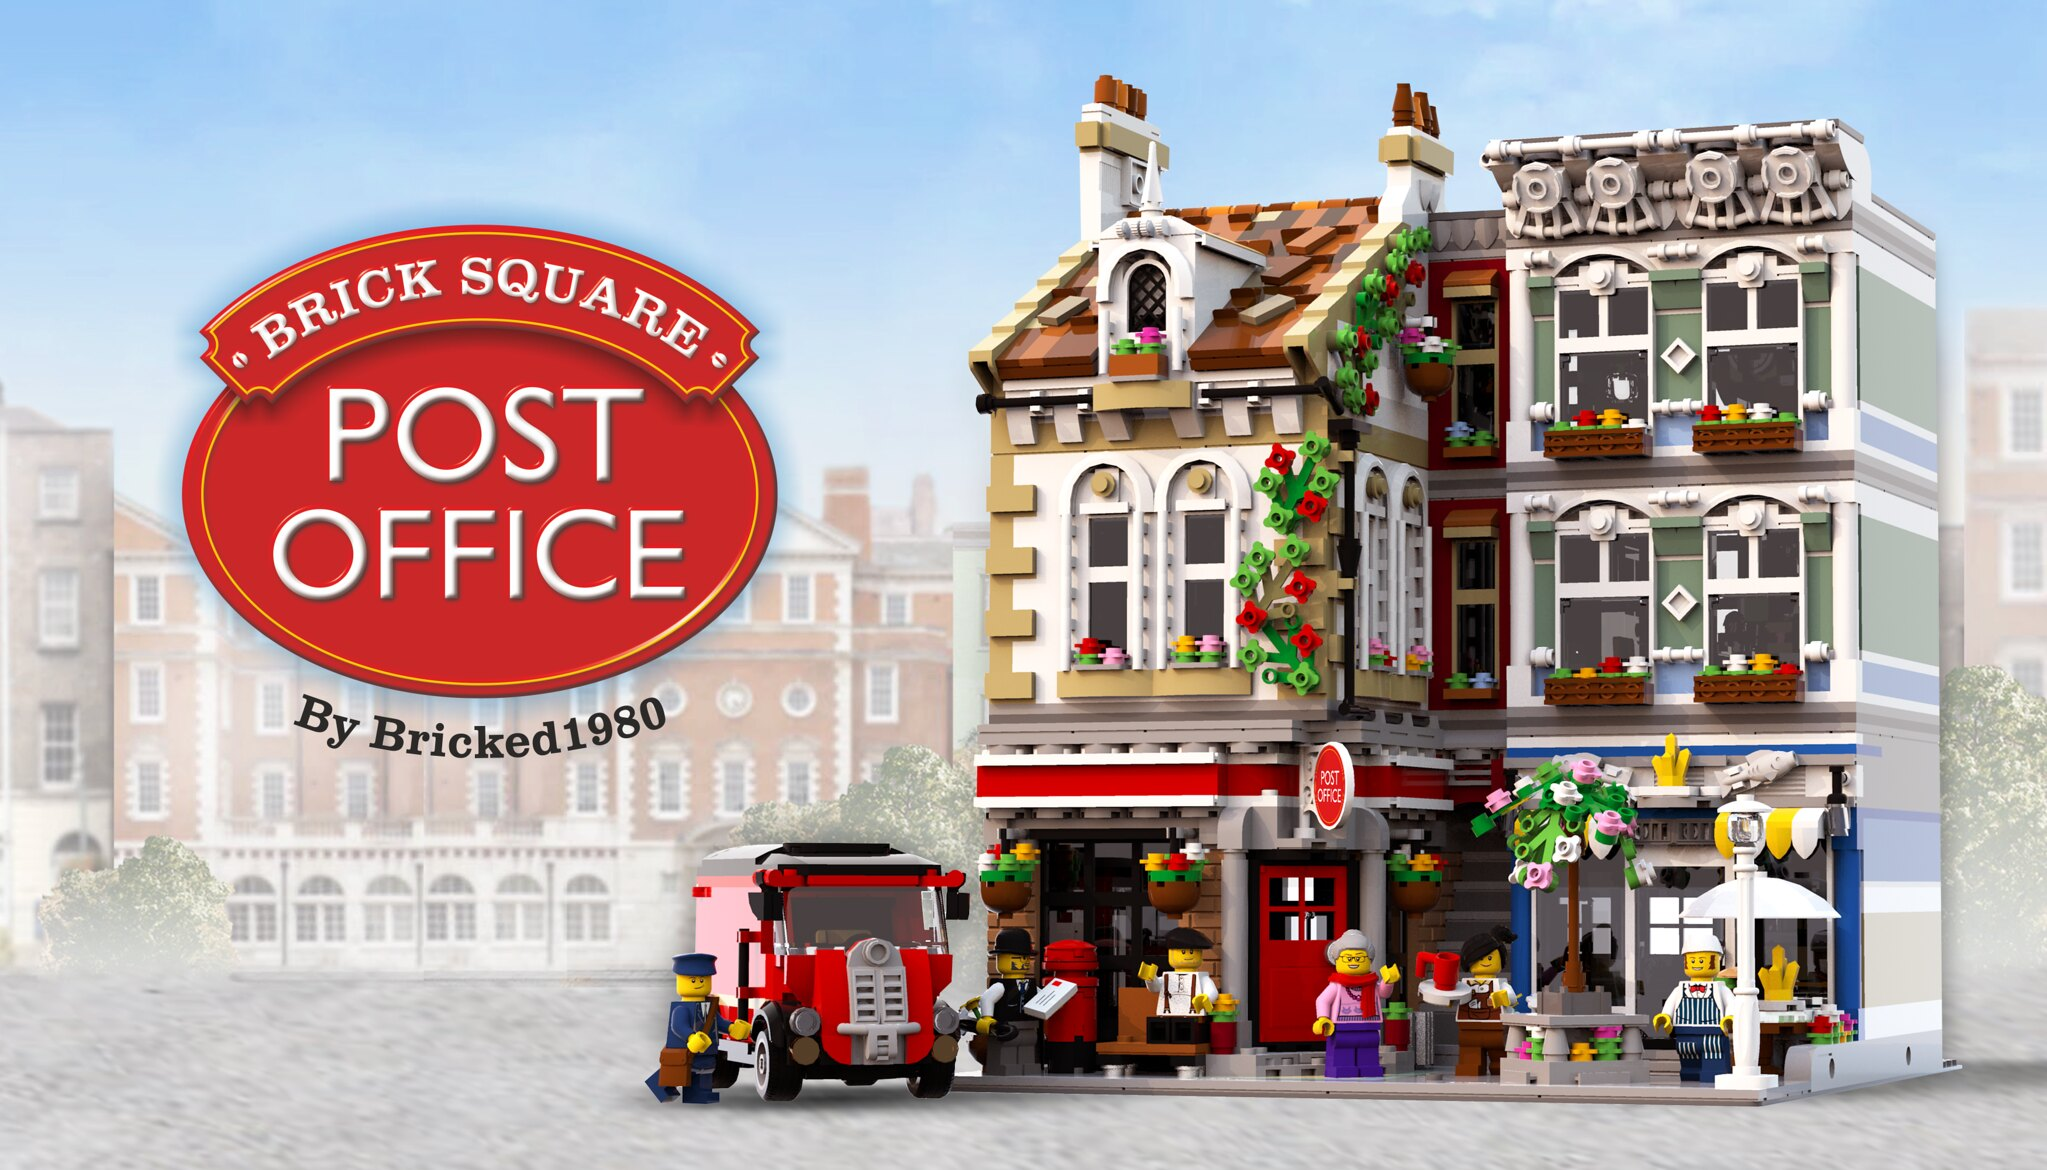 MOC] BRICK SQUARE POST OFFICE - LEGO Town - Eurobricks Forums